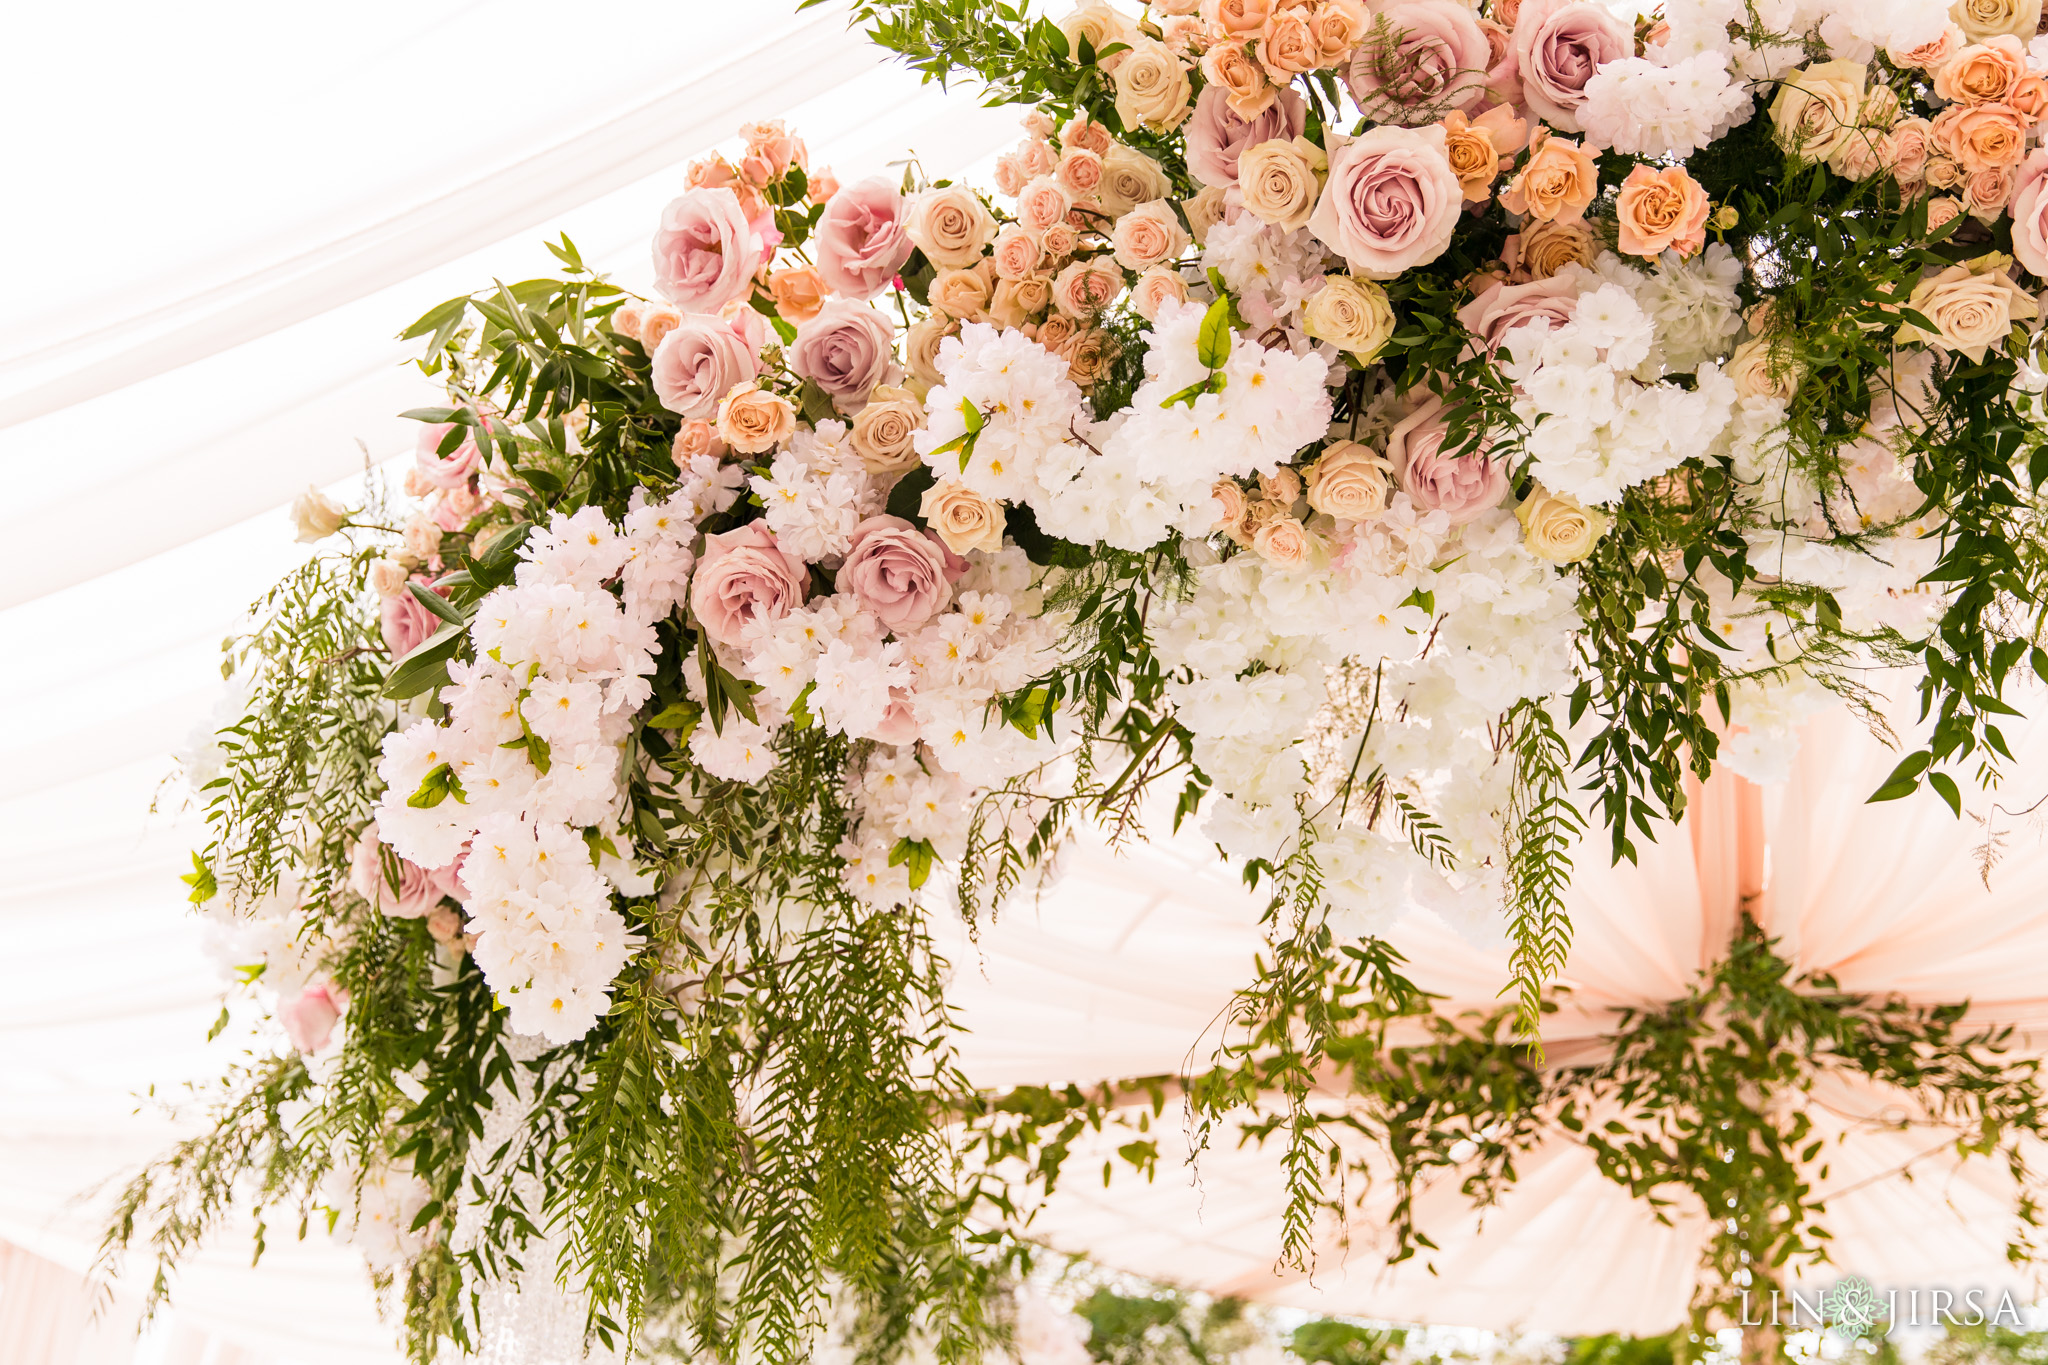 - Weddings have always been an important part of my work. One of the very first events I worked for was a wedding, and every one since has come with a sense of nostalgia.I always feel honored to be a part of a couple's special day. Weddings in the summer, like this one, are some of my favorite. The warm breeze and the bright summer flowers make me feel like some sort of creative junkie.